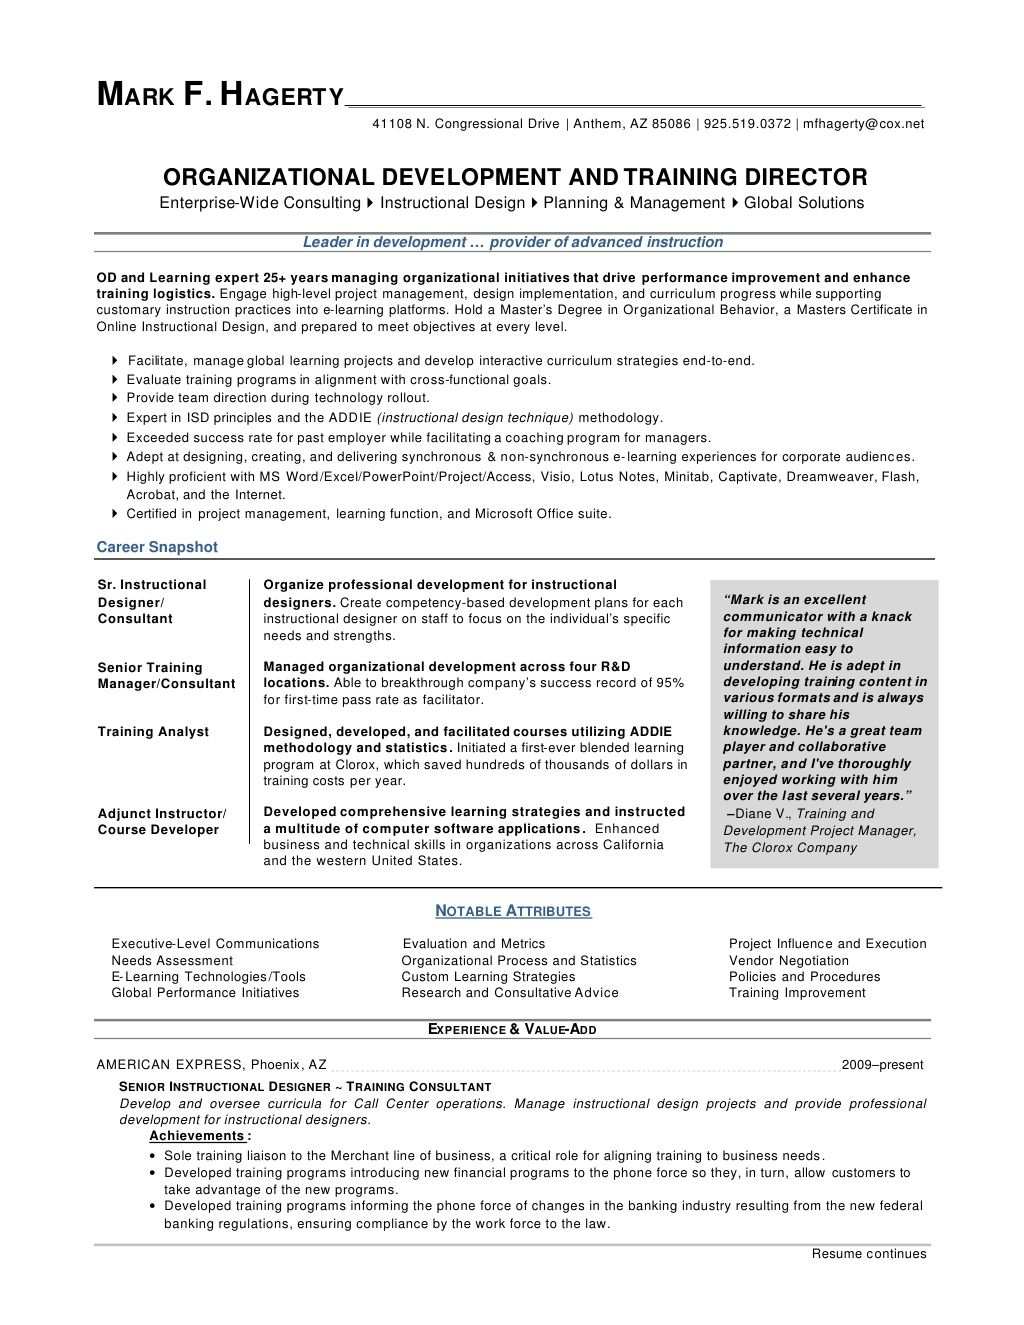 marketing director resume template Collection-mark f hagerty od training director resume by mfhagerty via Slideshare 9-f